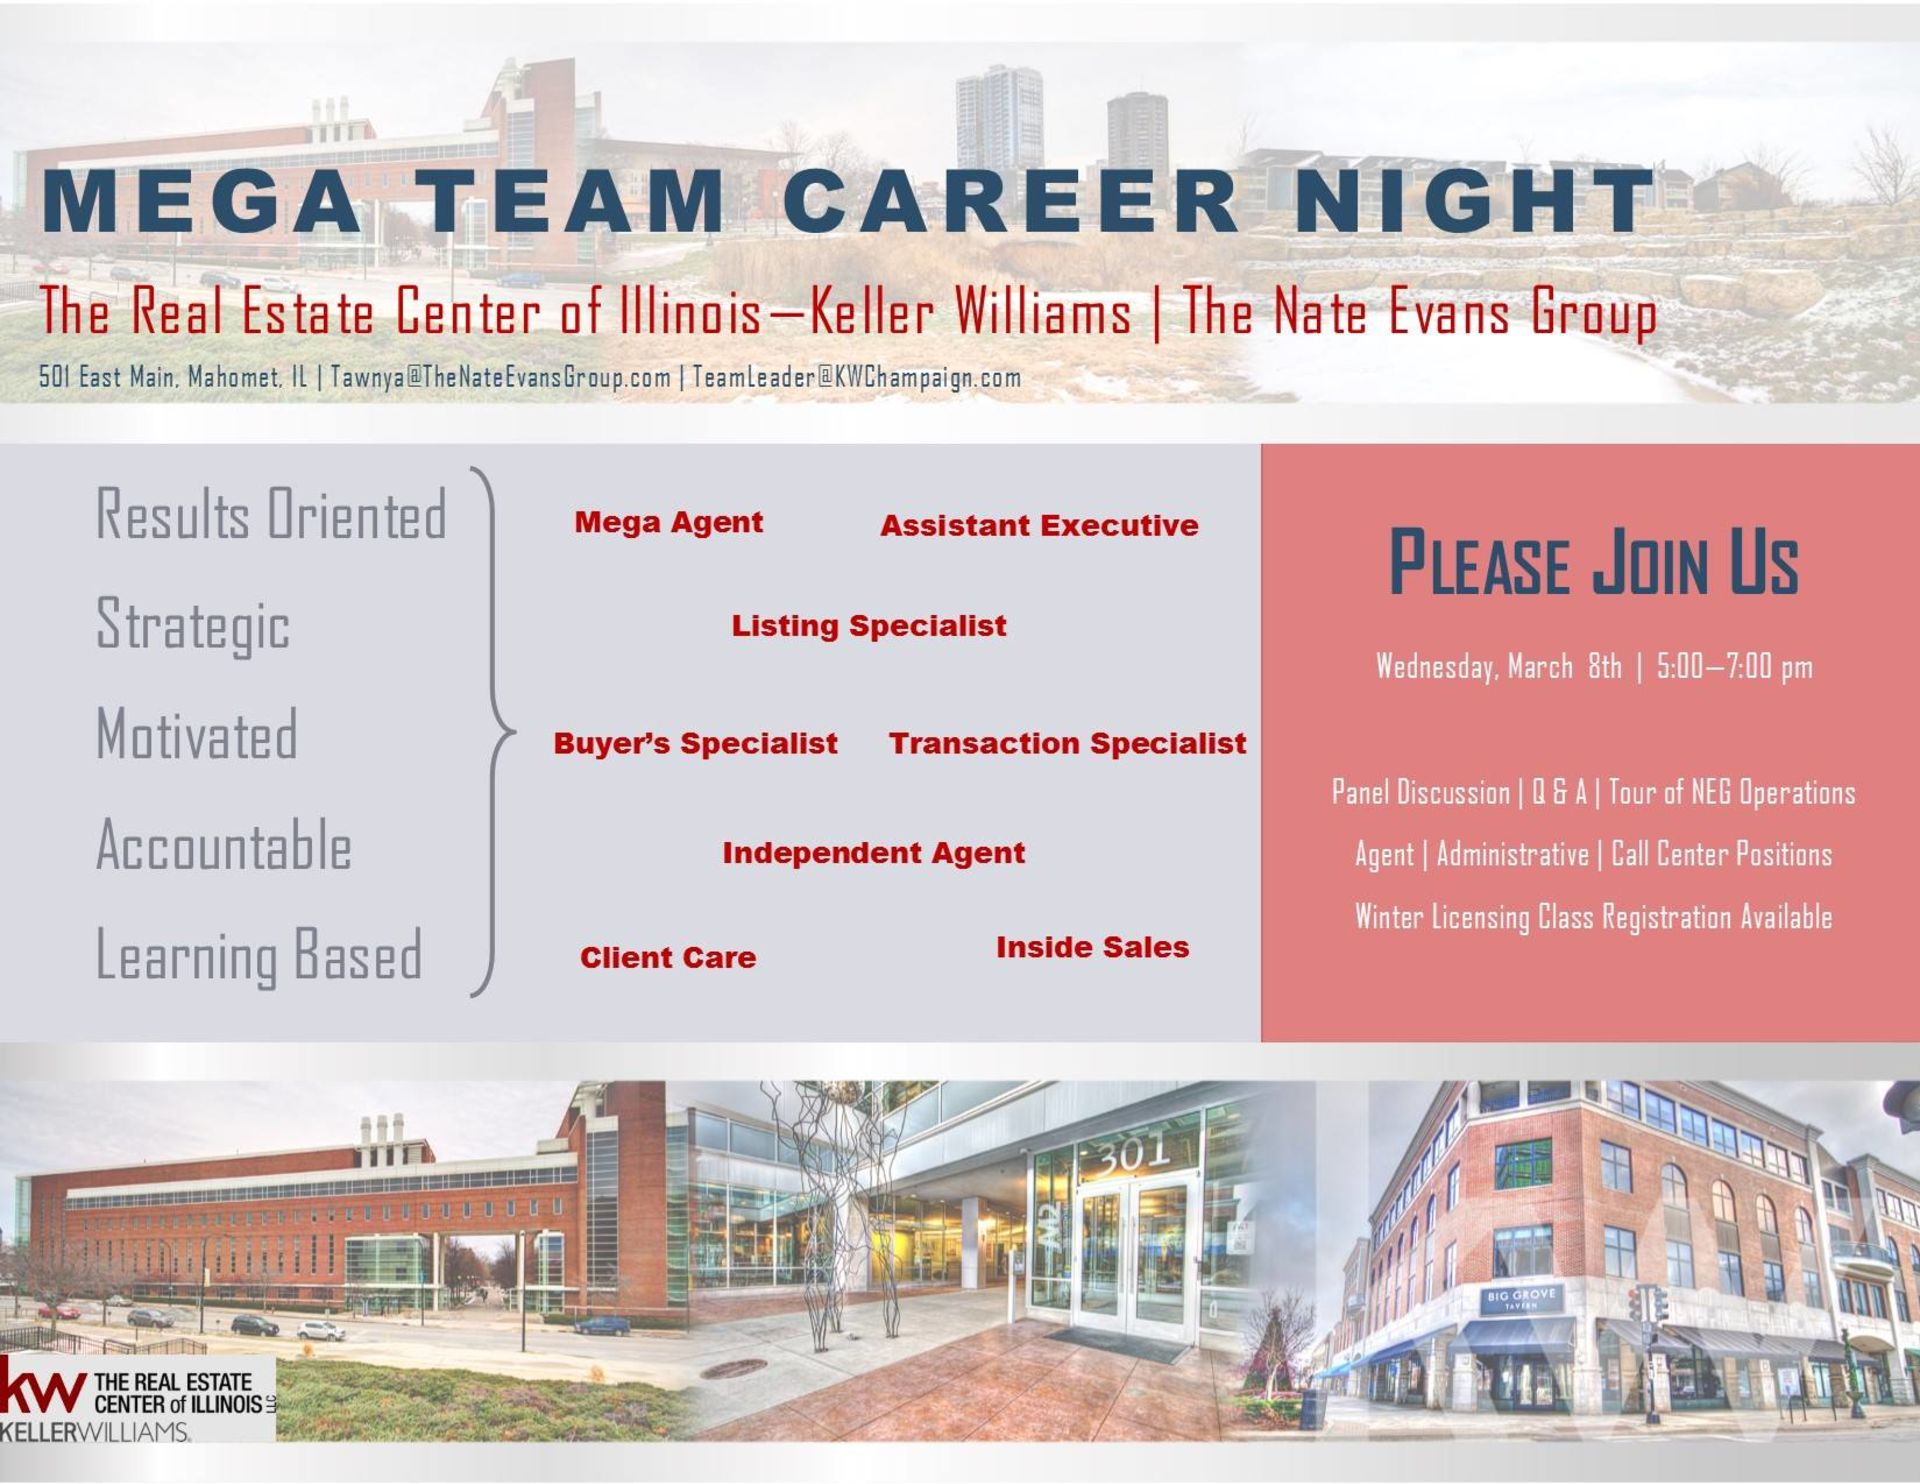 The Nate Evans Group Career Night